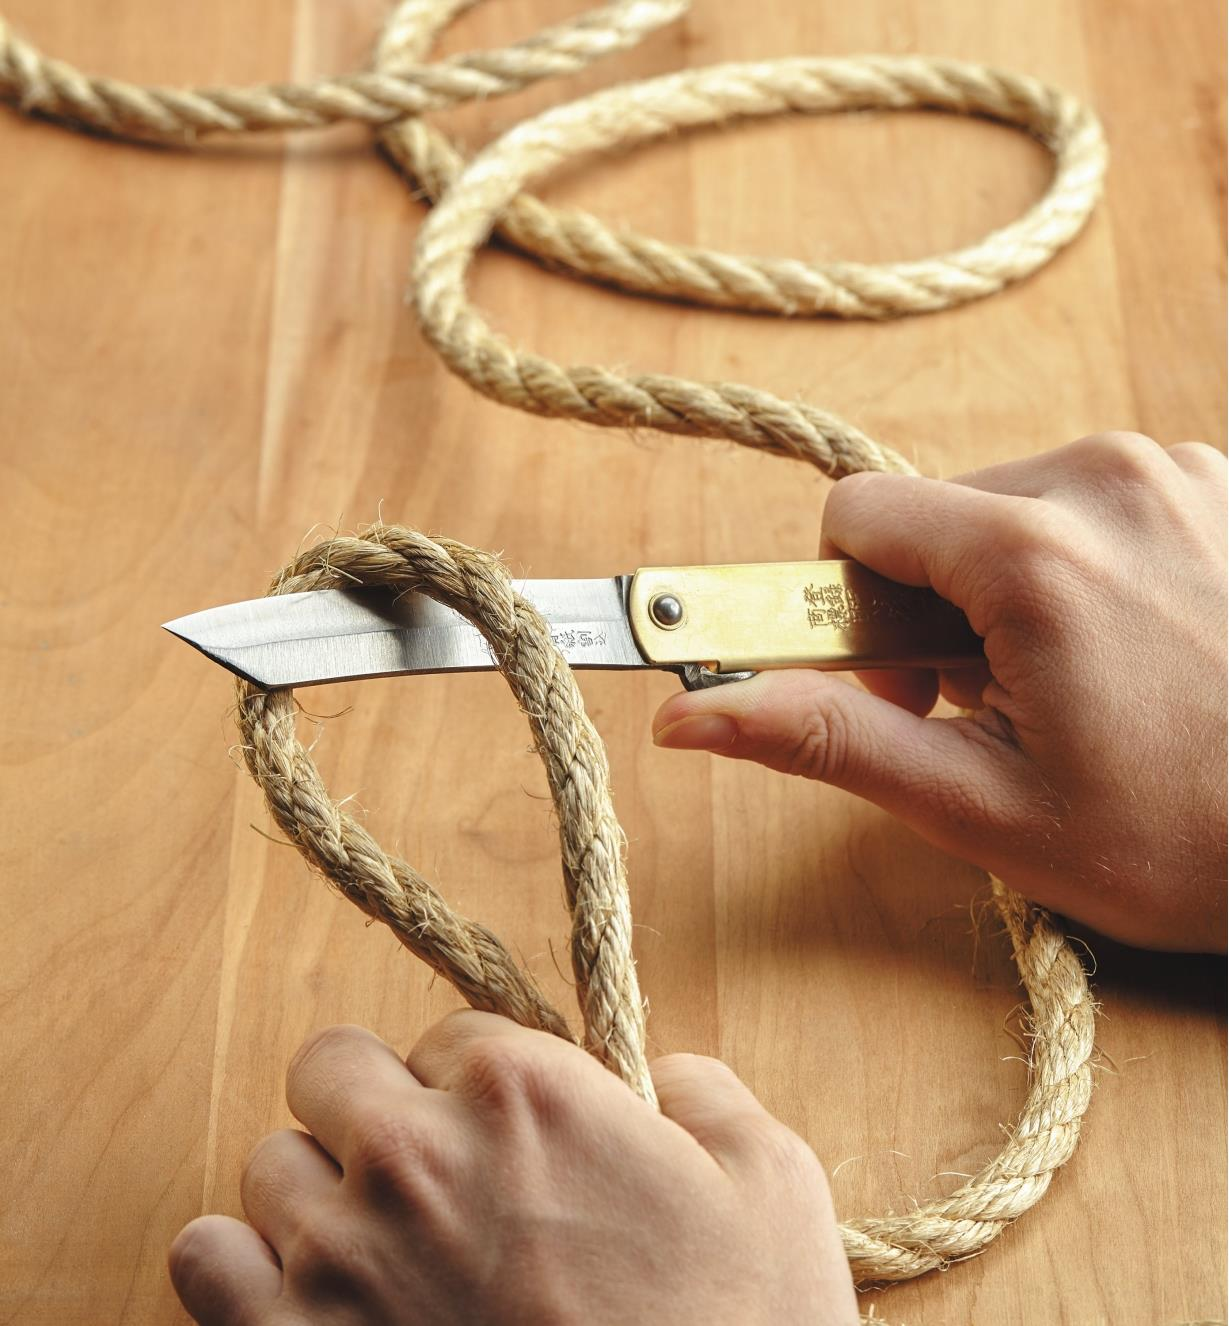 Using a Japanese Carpenter's Knife to cut rope